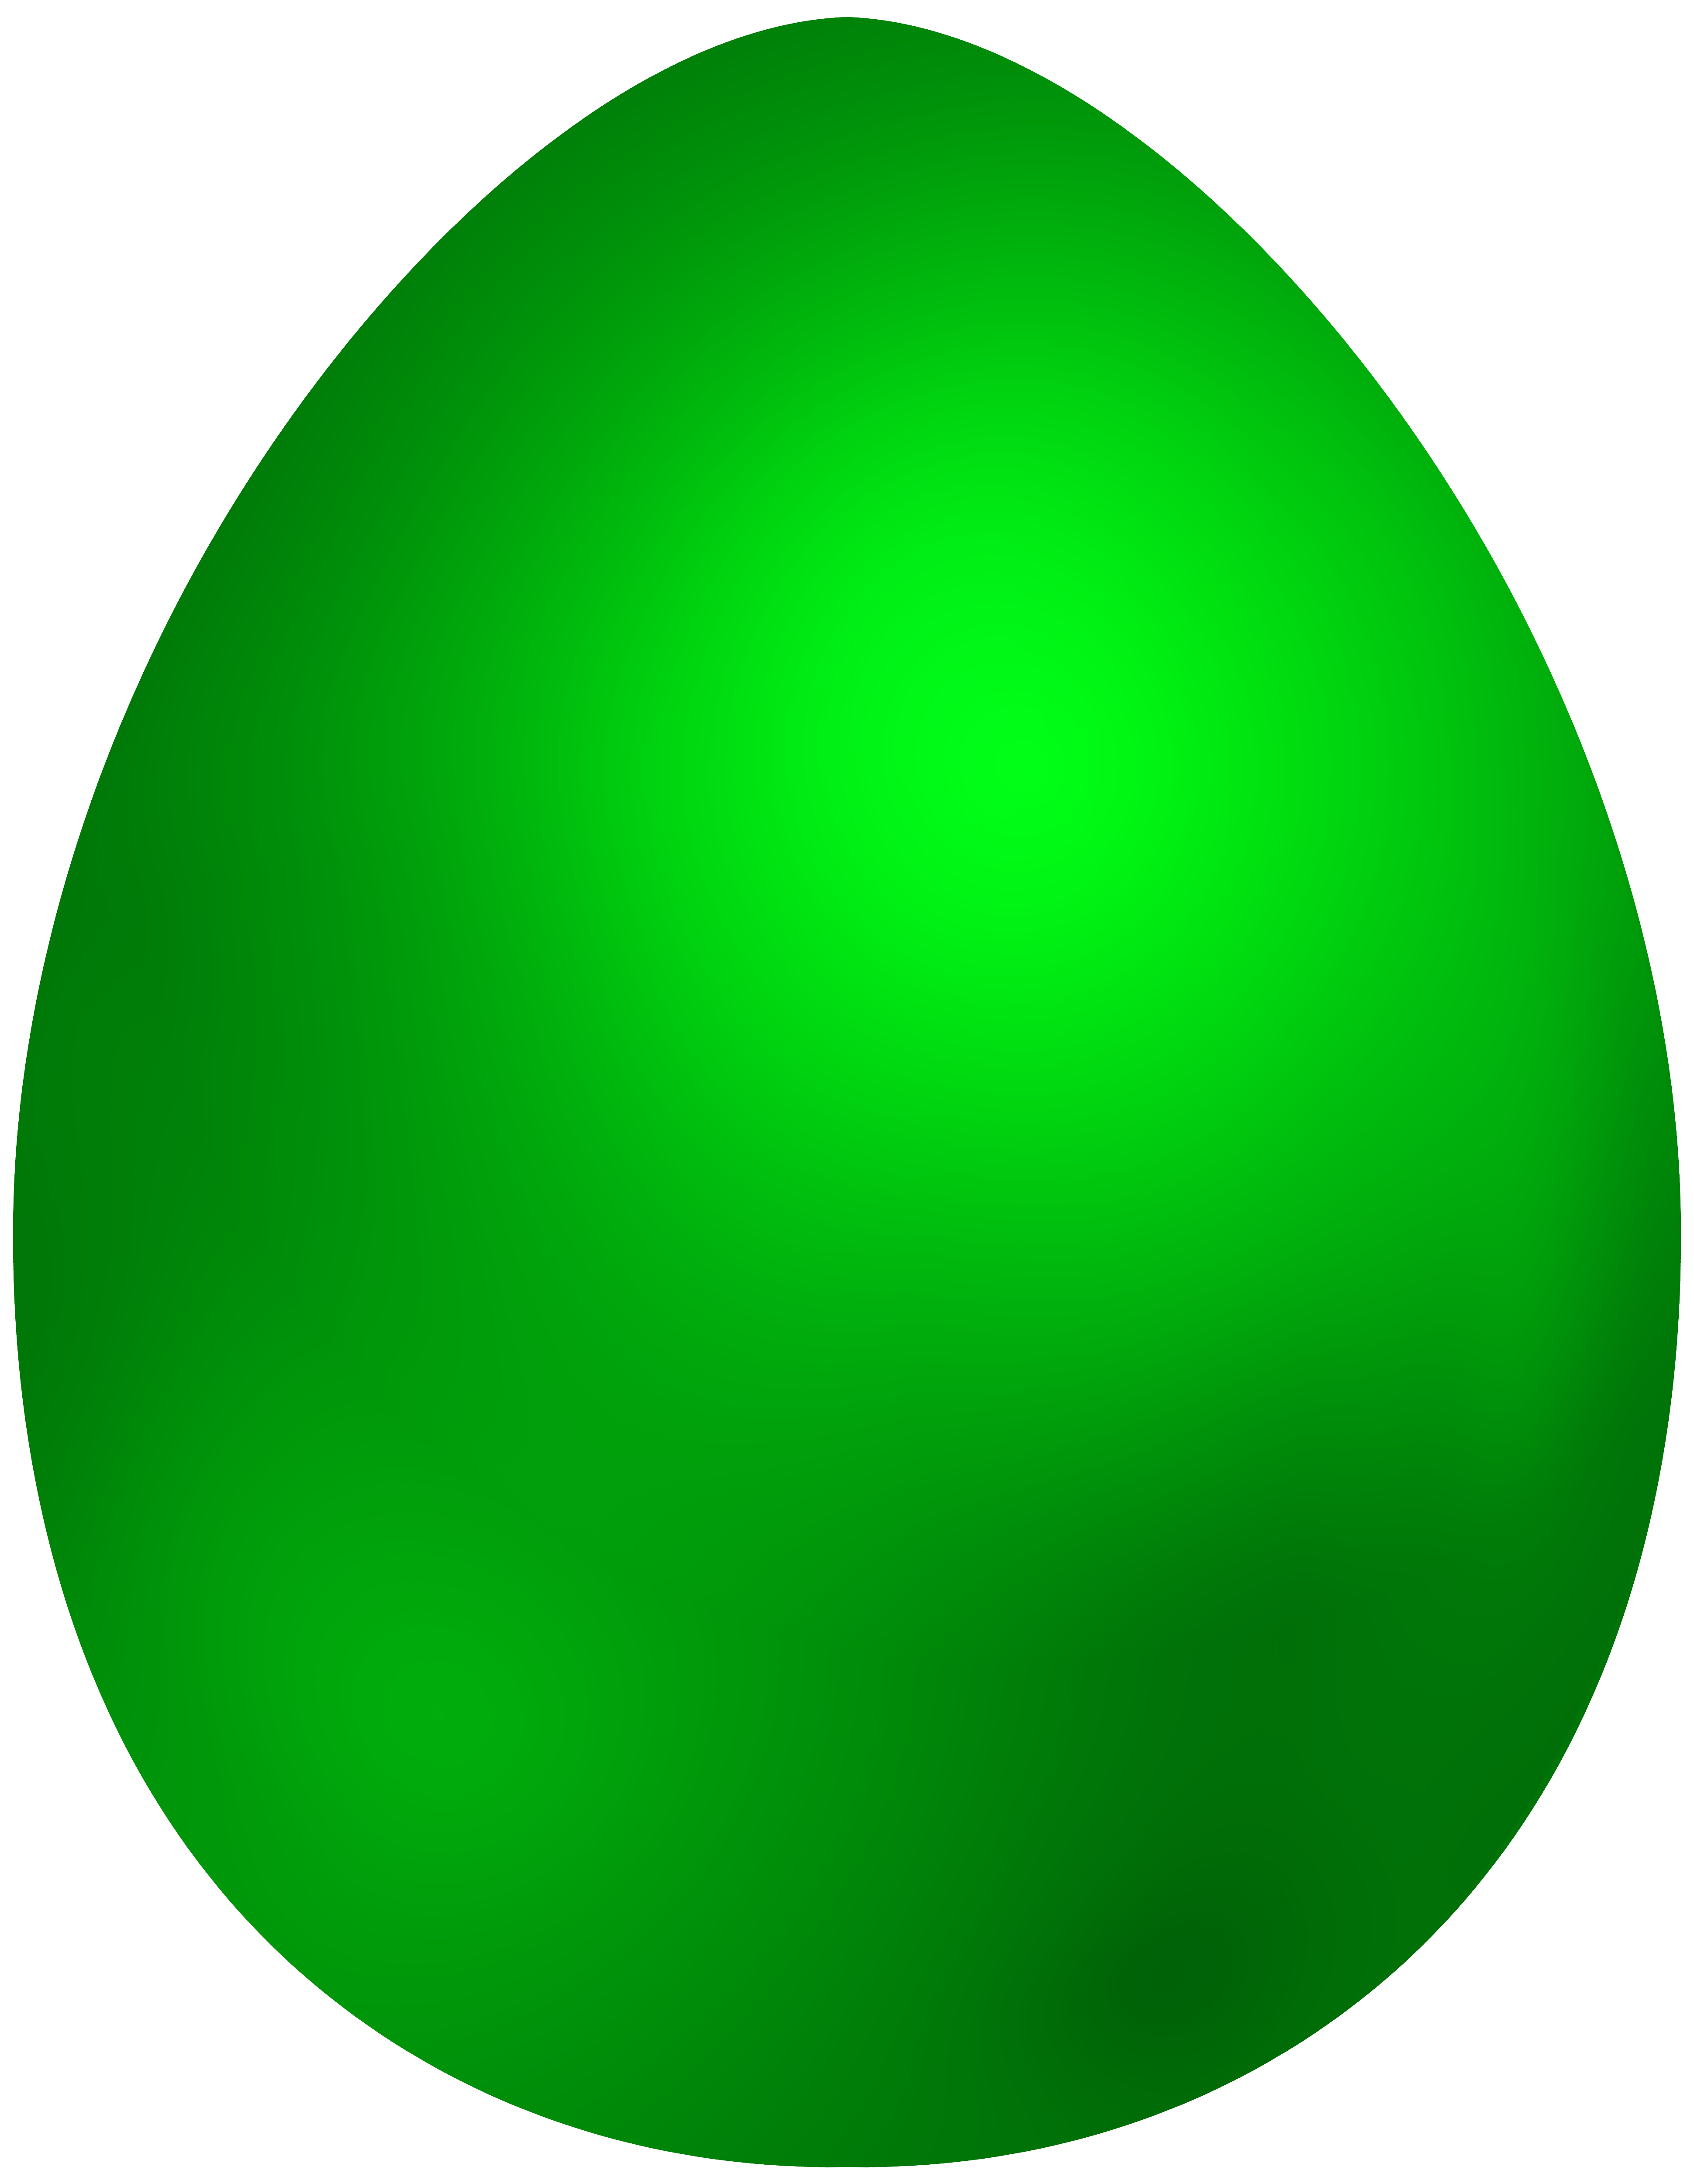 Easter egg png clip. Picture clipart green